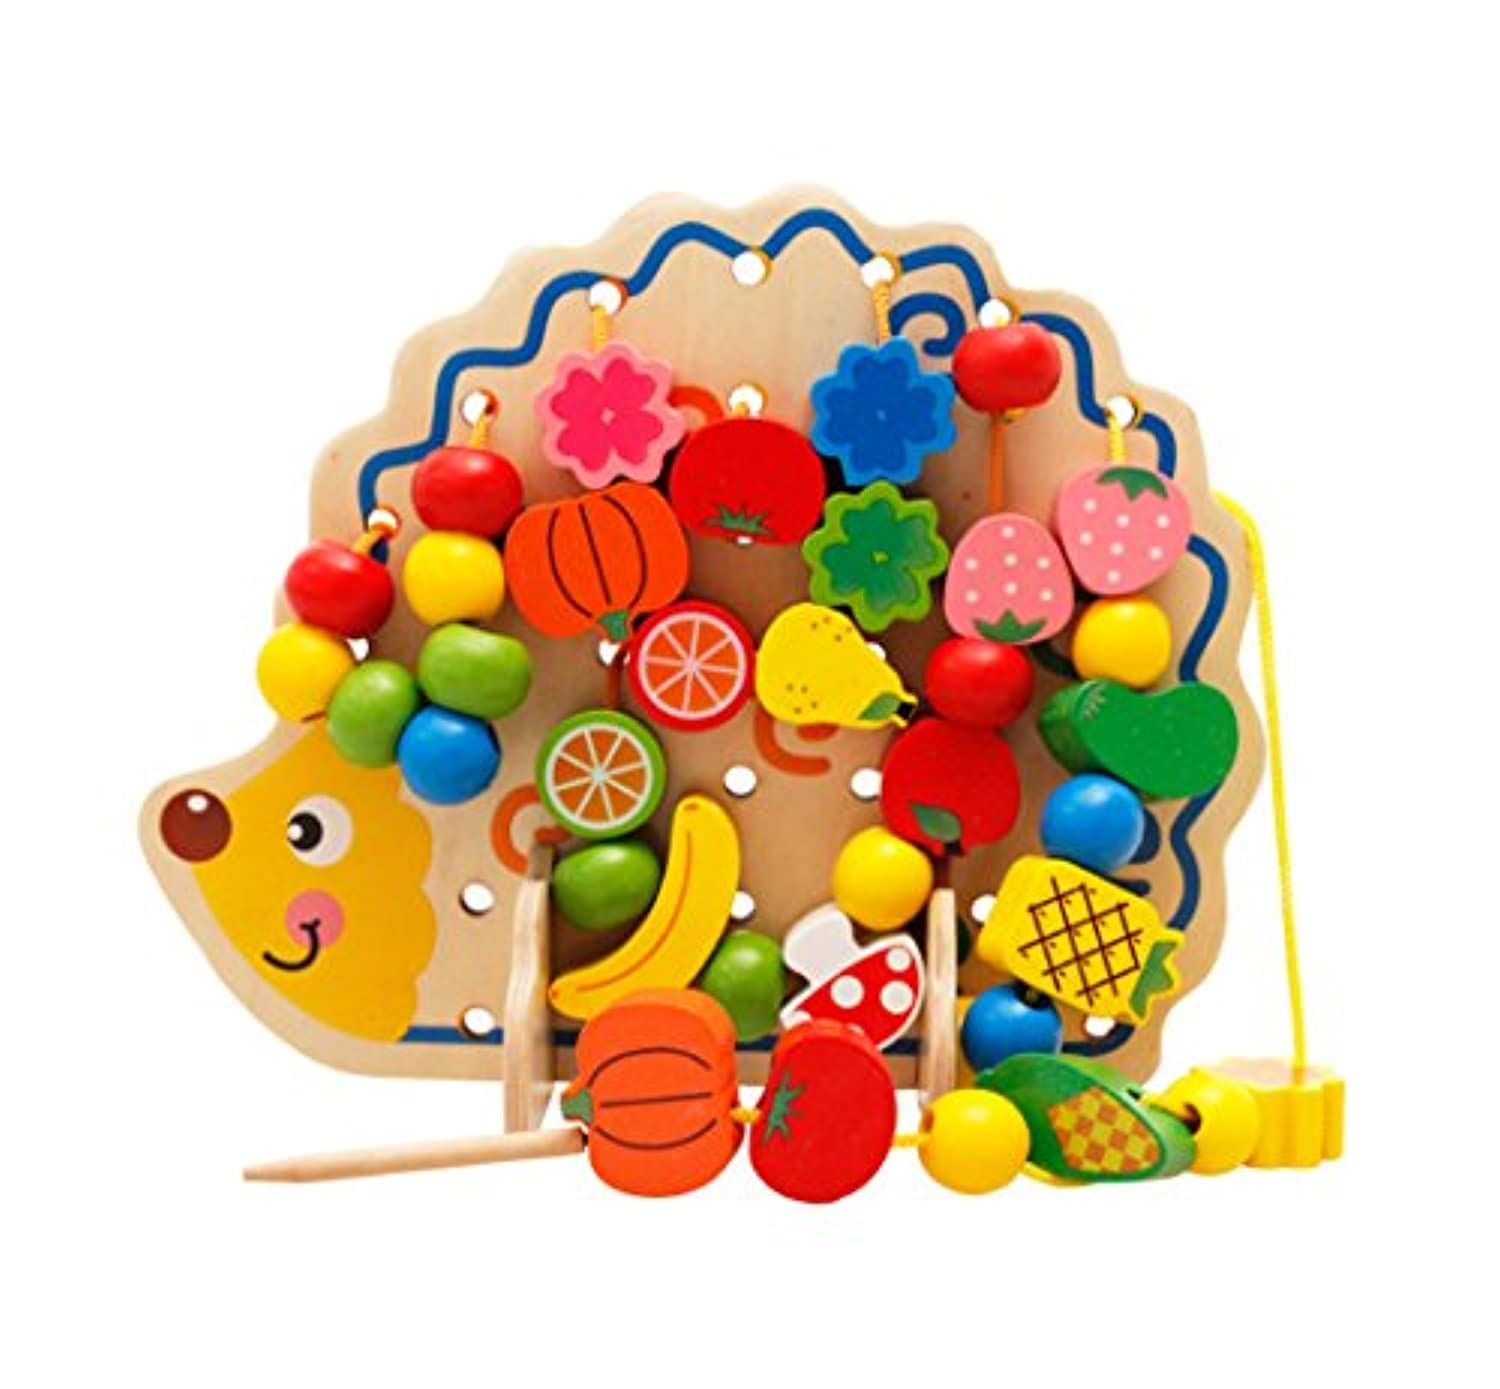 Biowow Fruit & Vegetable Lacing Wooden Beads with Hedgehog Board Threading Beads Wooden Block Early Education Learning Toys